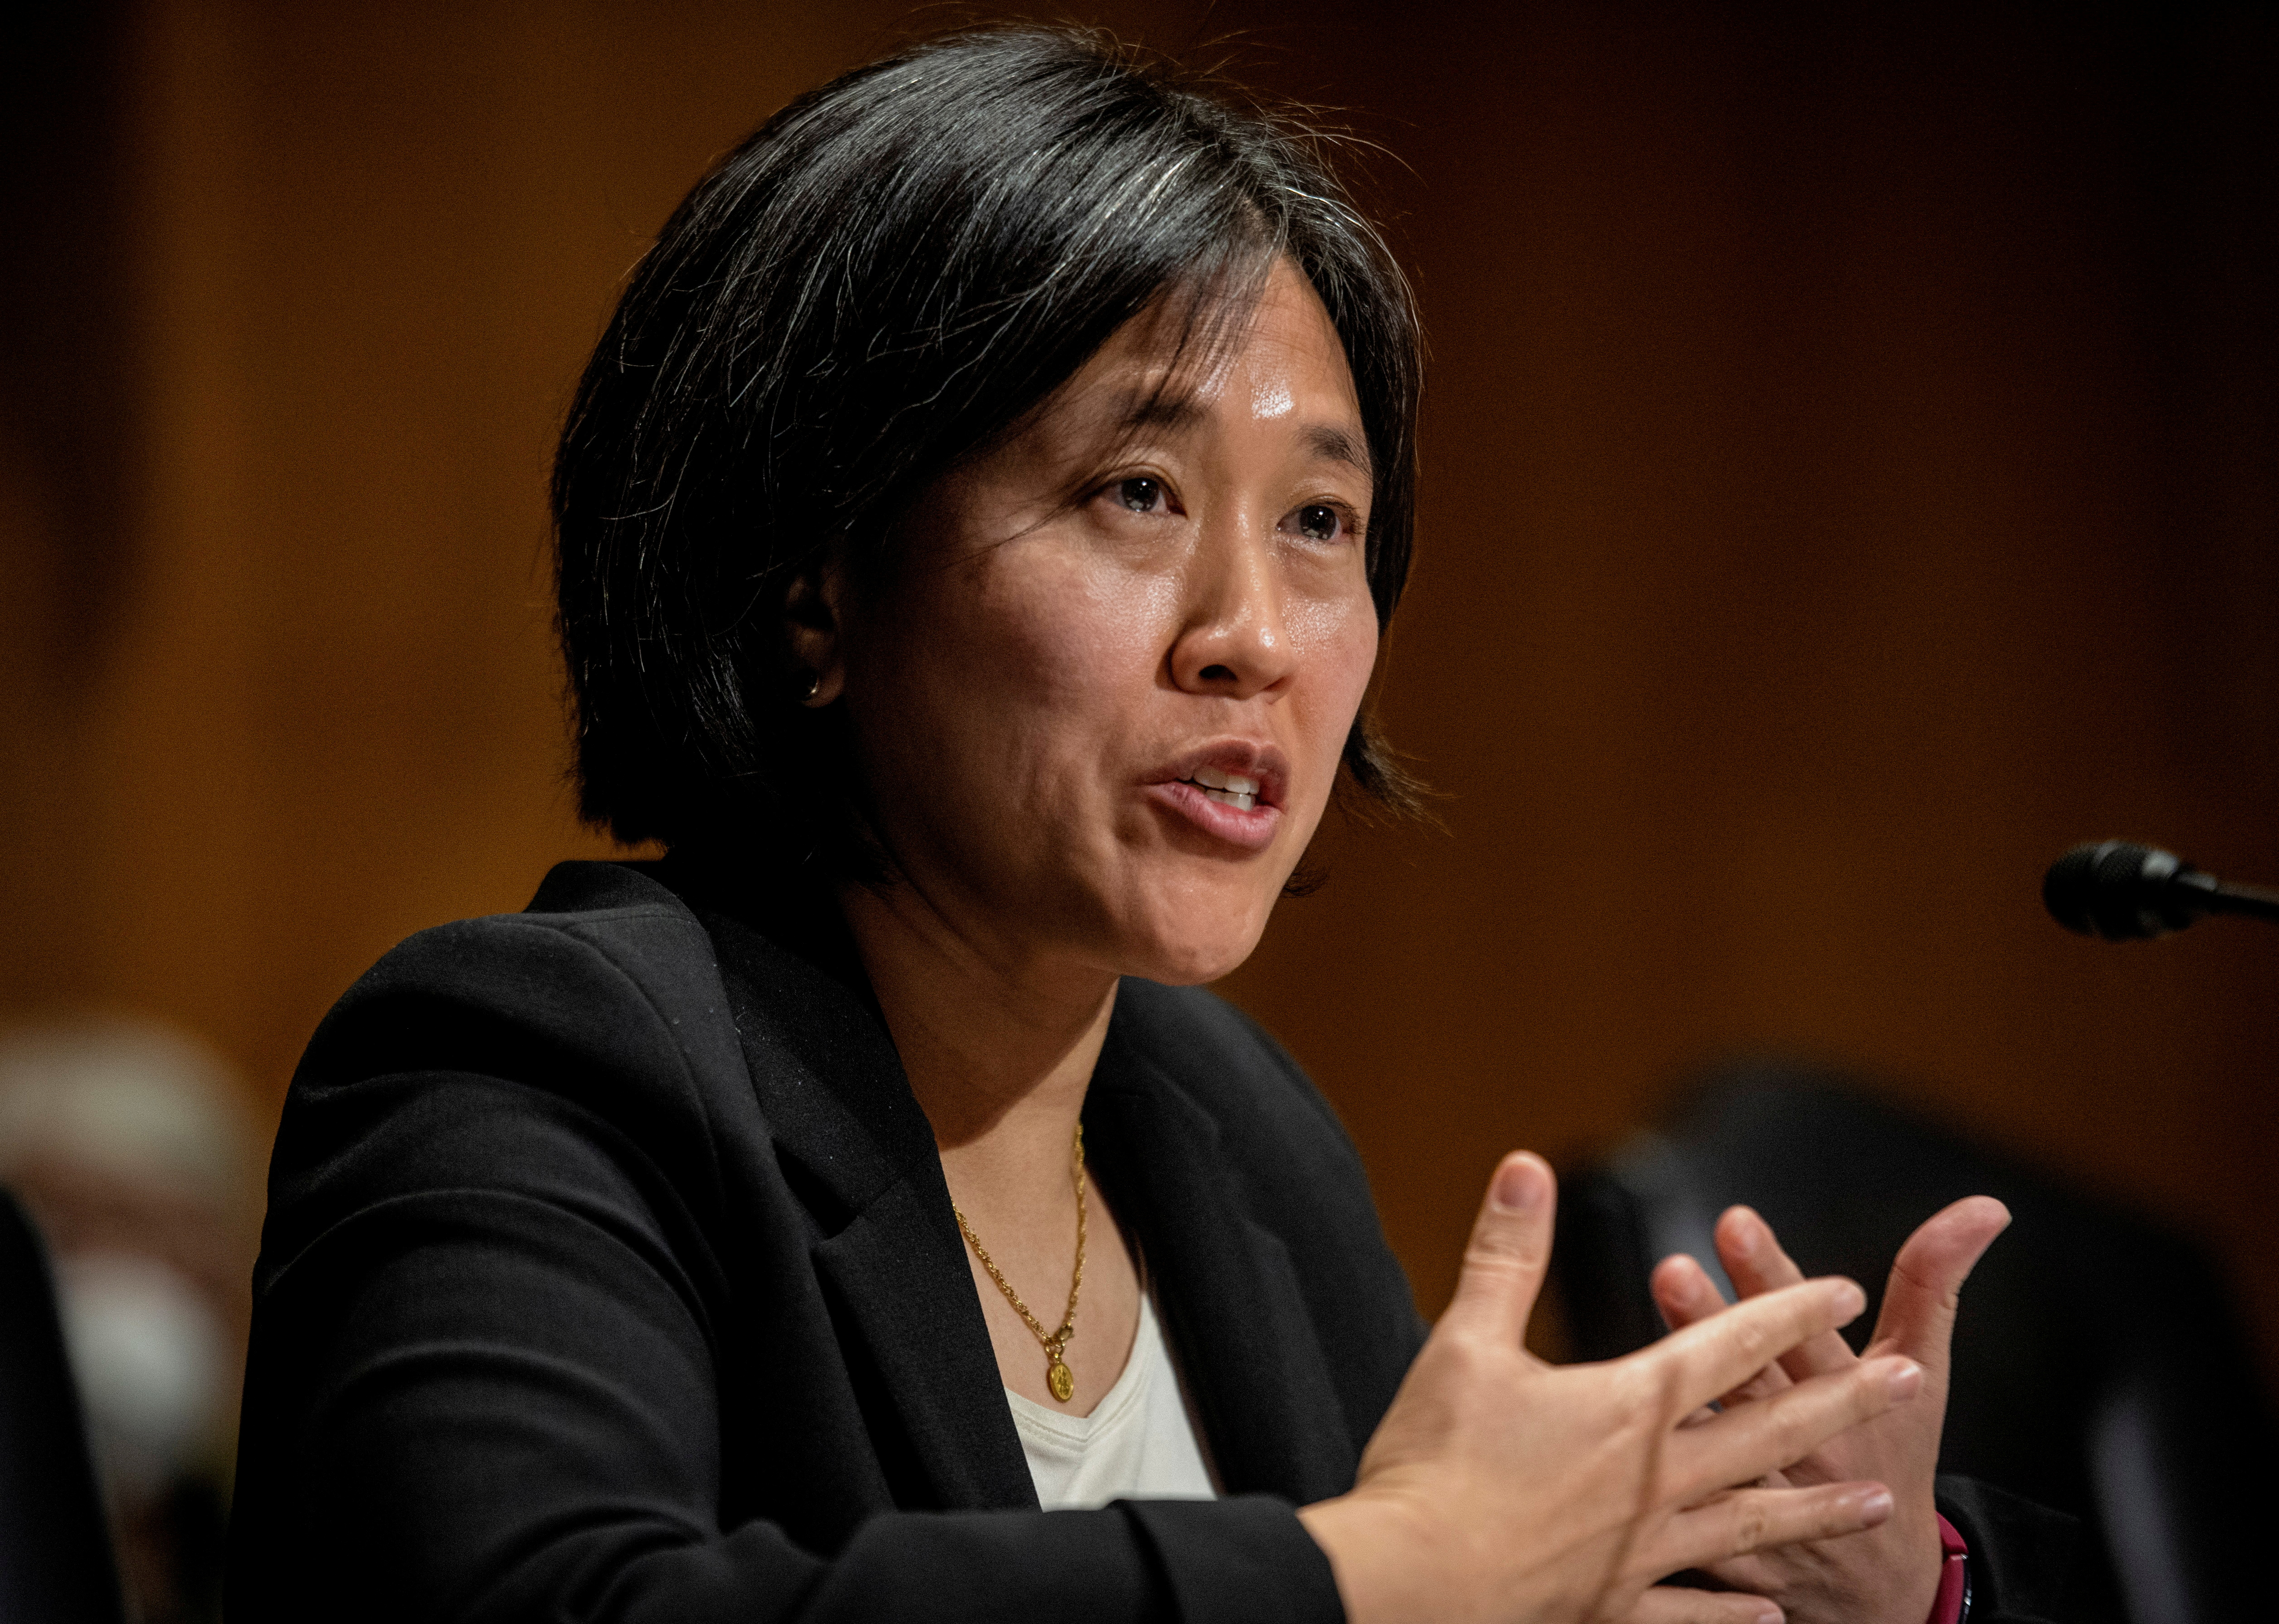 Katherine C. Tai addresses the Senate Finance committee hearings to examine her nomination to be United States Trade Representative, with the rank of Ambassador, in Washington, DC February 25, 2021. Bill O'Leary/Pool via REUTERS/File Photo